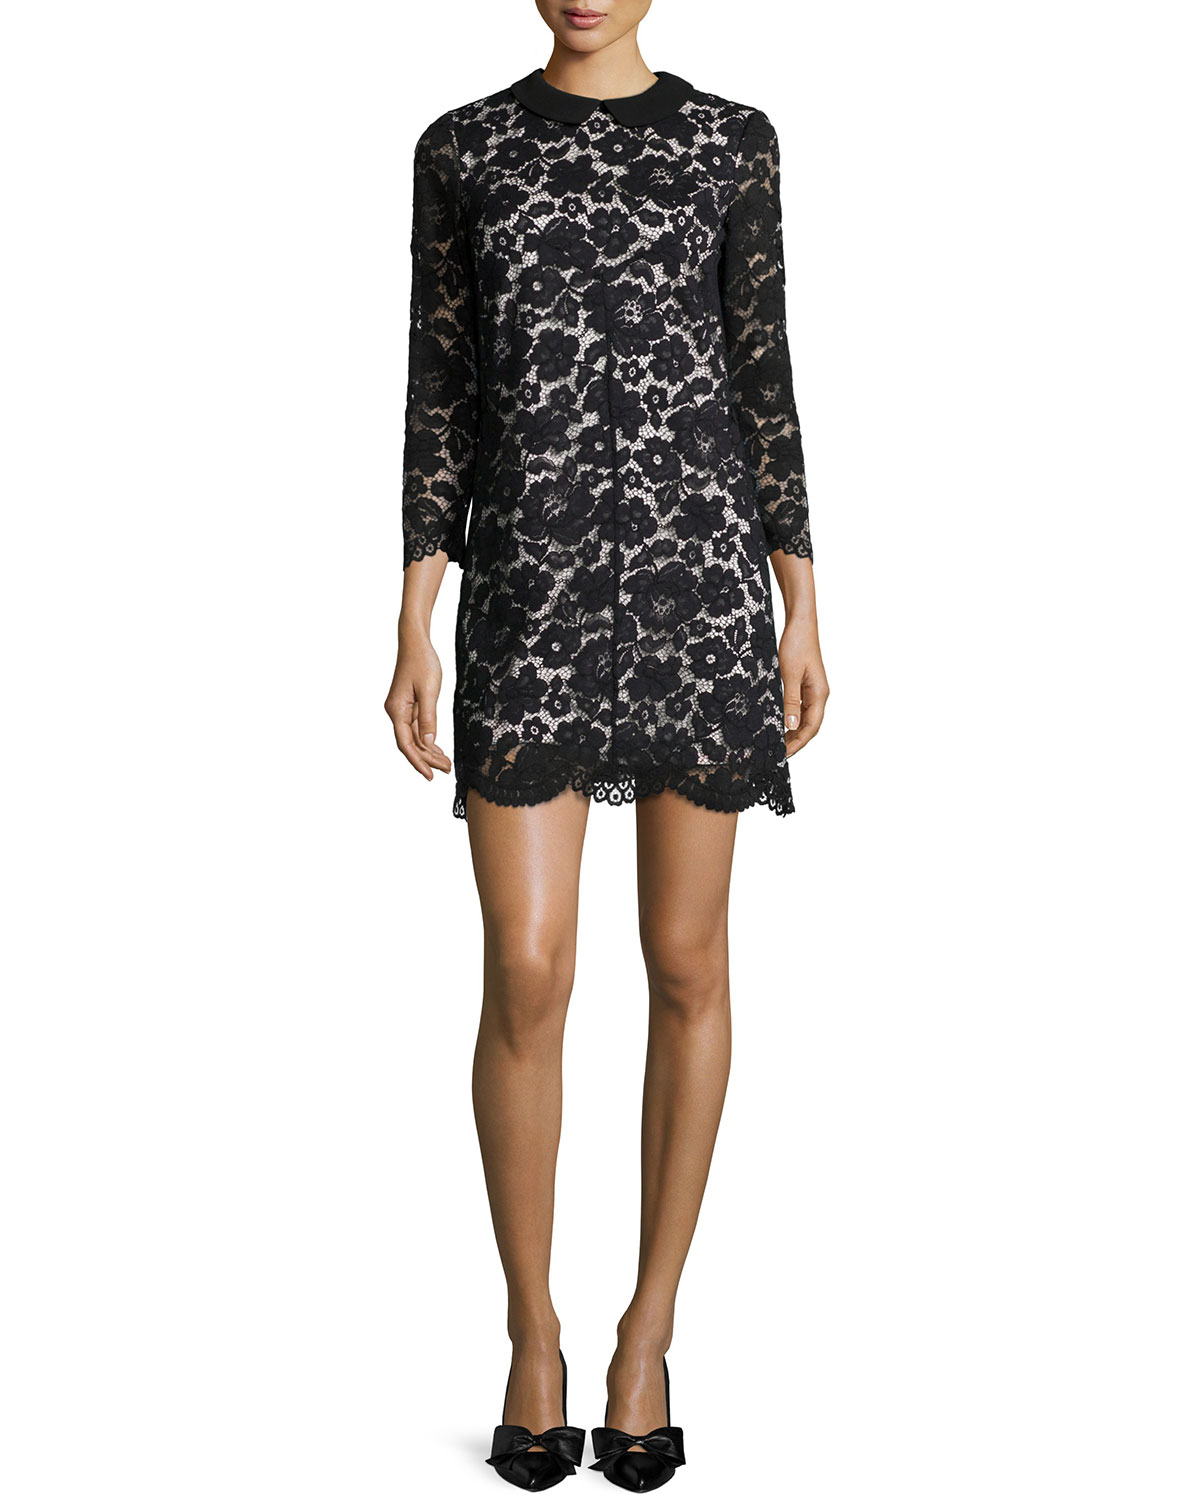 Ameera Lace Sheath Dress, Black, Size: 2/1 (UK 1) - Ted Baker London